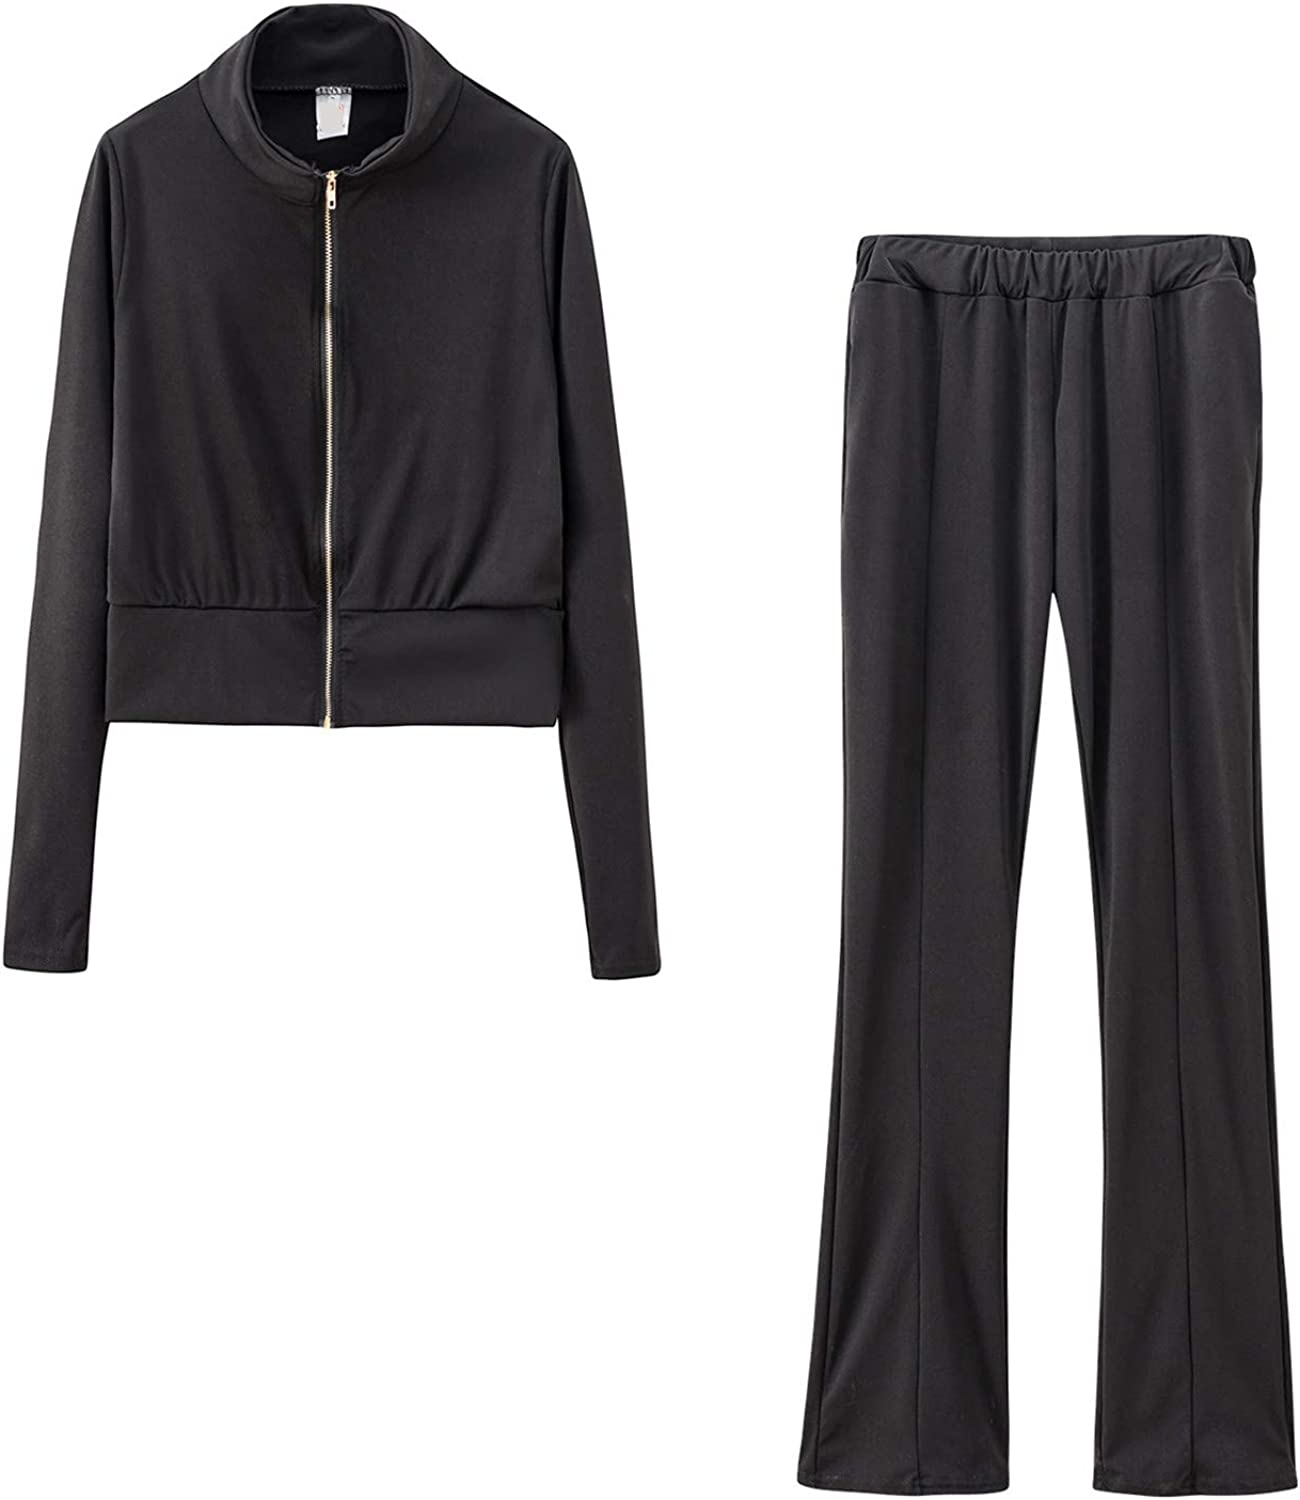 Nippon regular agency Women Fashion Jacksonville Mall Zipper Solid Color Sweat and Tracks Top Shirt Pant